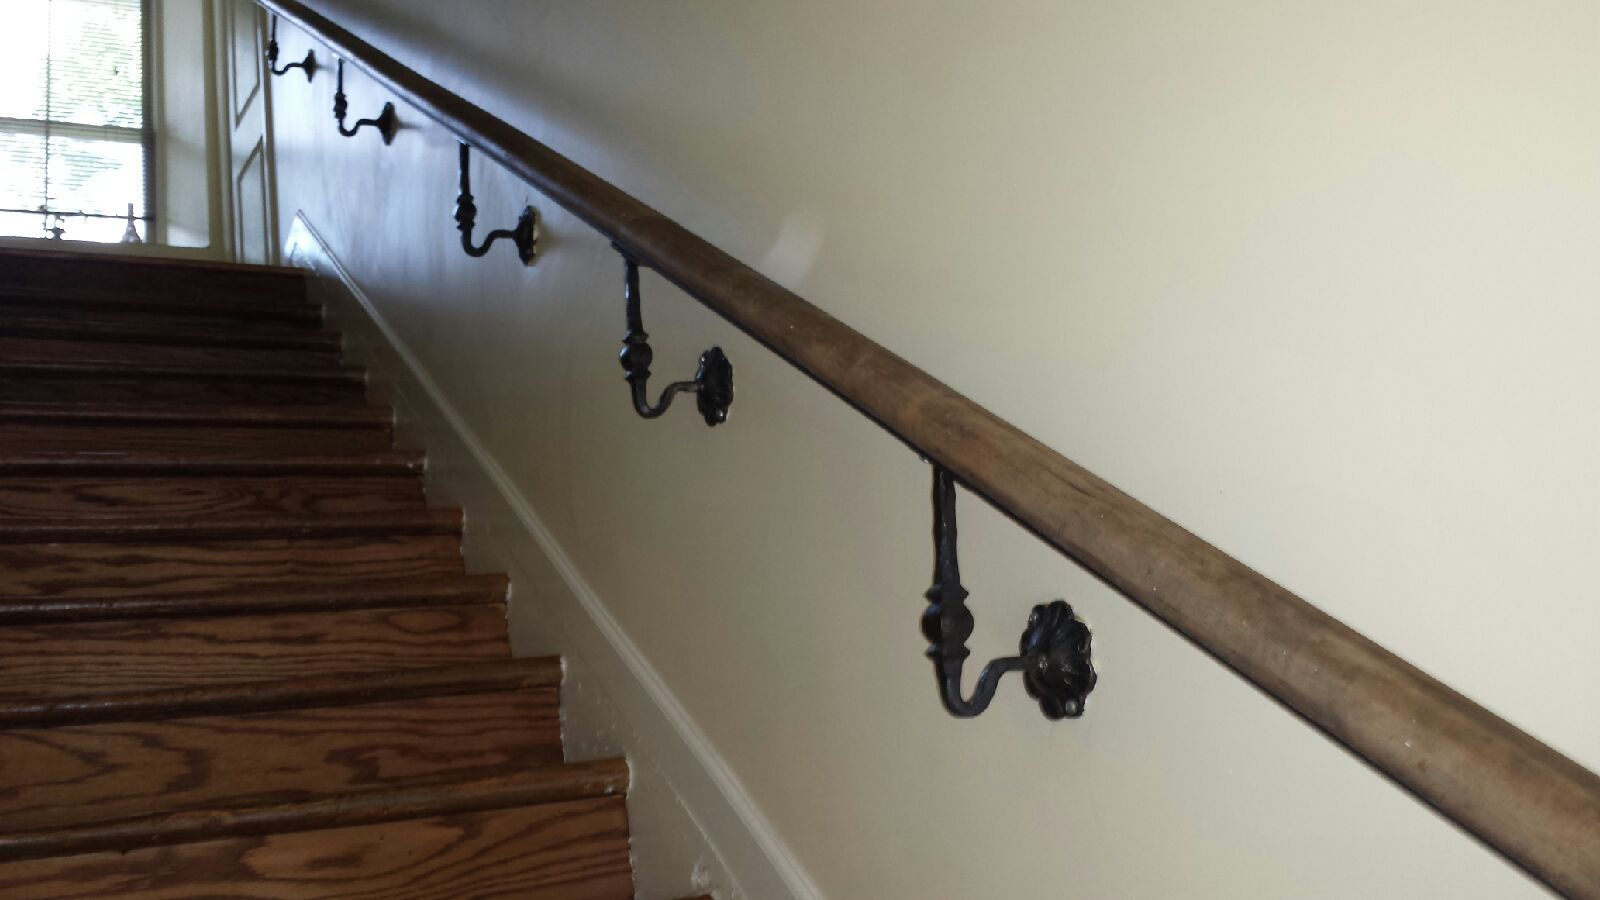 Handrail Brackets for Staircases Wrought Iron Handrails for Outdoor Steps Interior External Wall Mounted Black Metal Handrails for Indoor Stairs